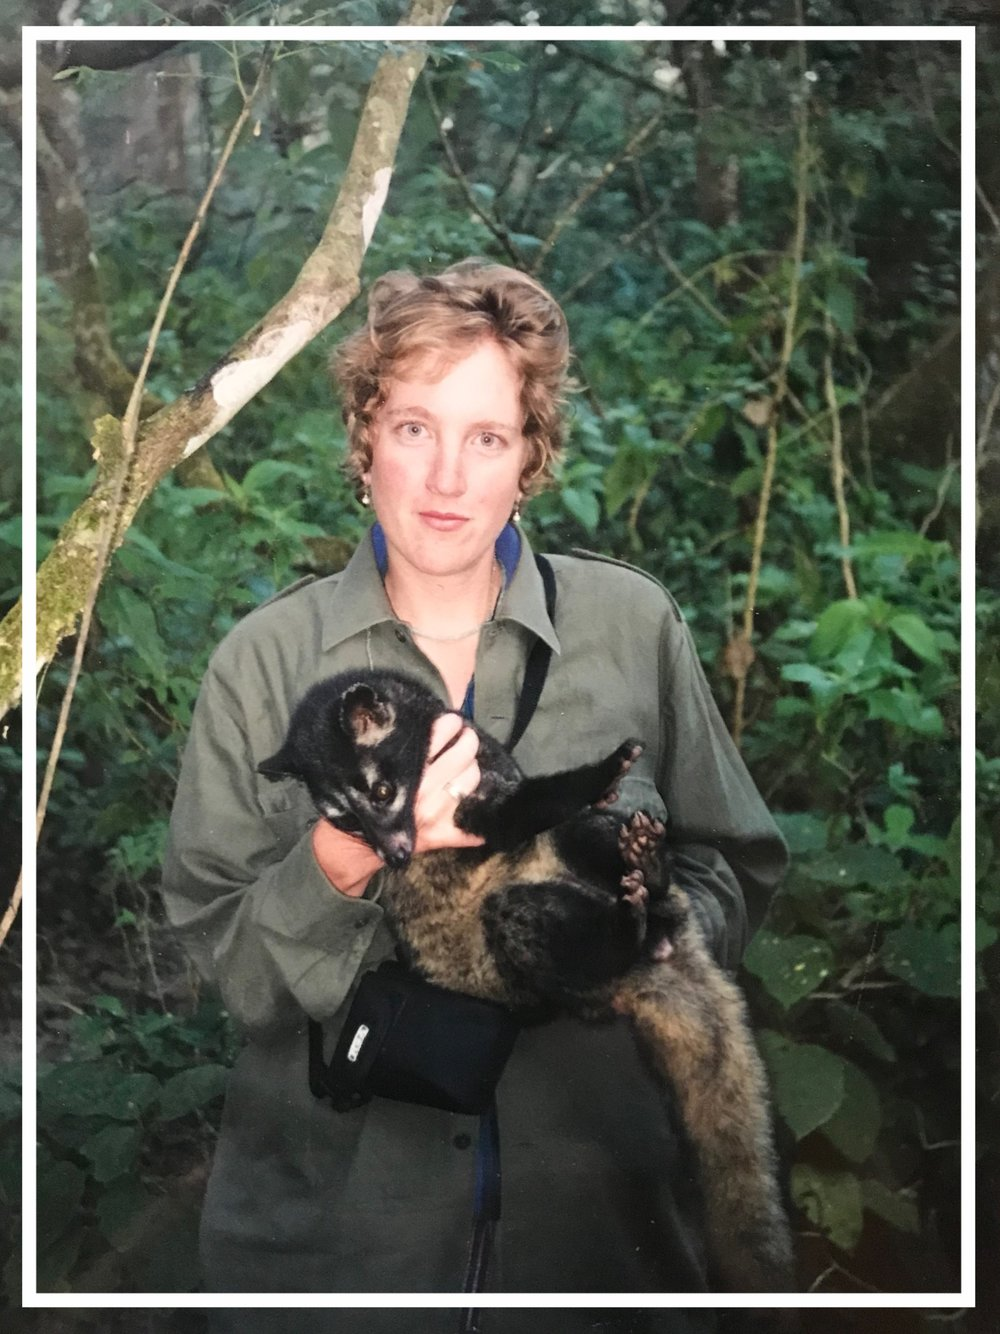 In the lowlands of Nepal, holding a marten.